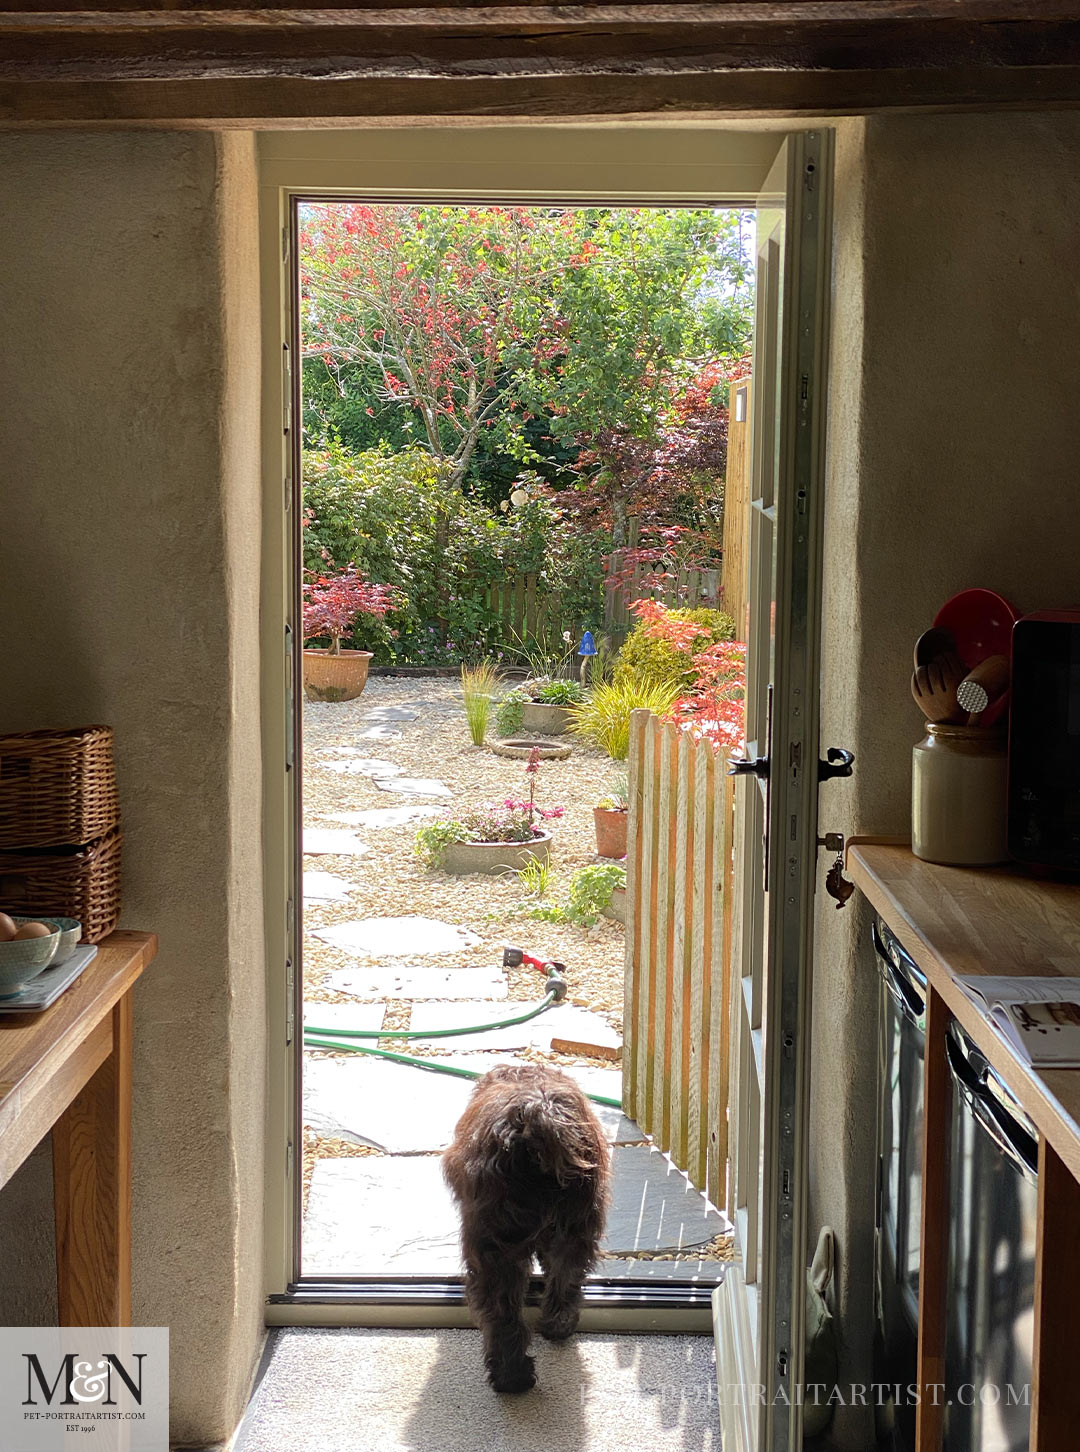 Melanie's July Monthly News Cottage and garden